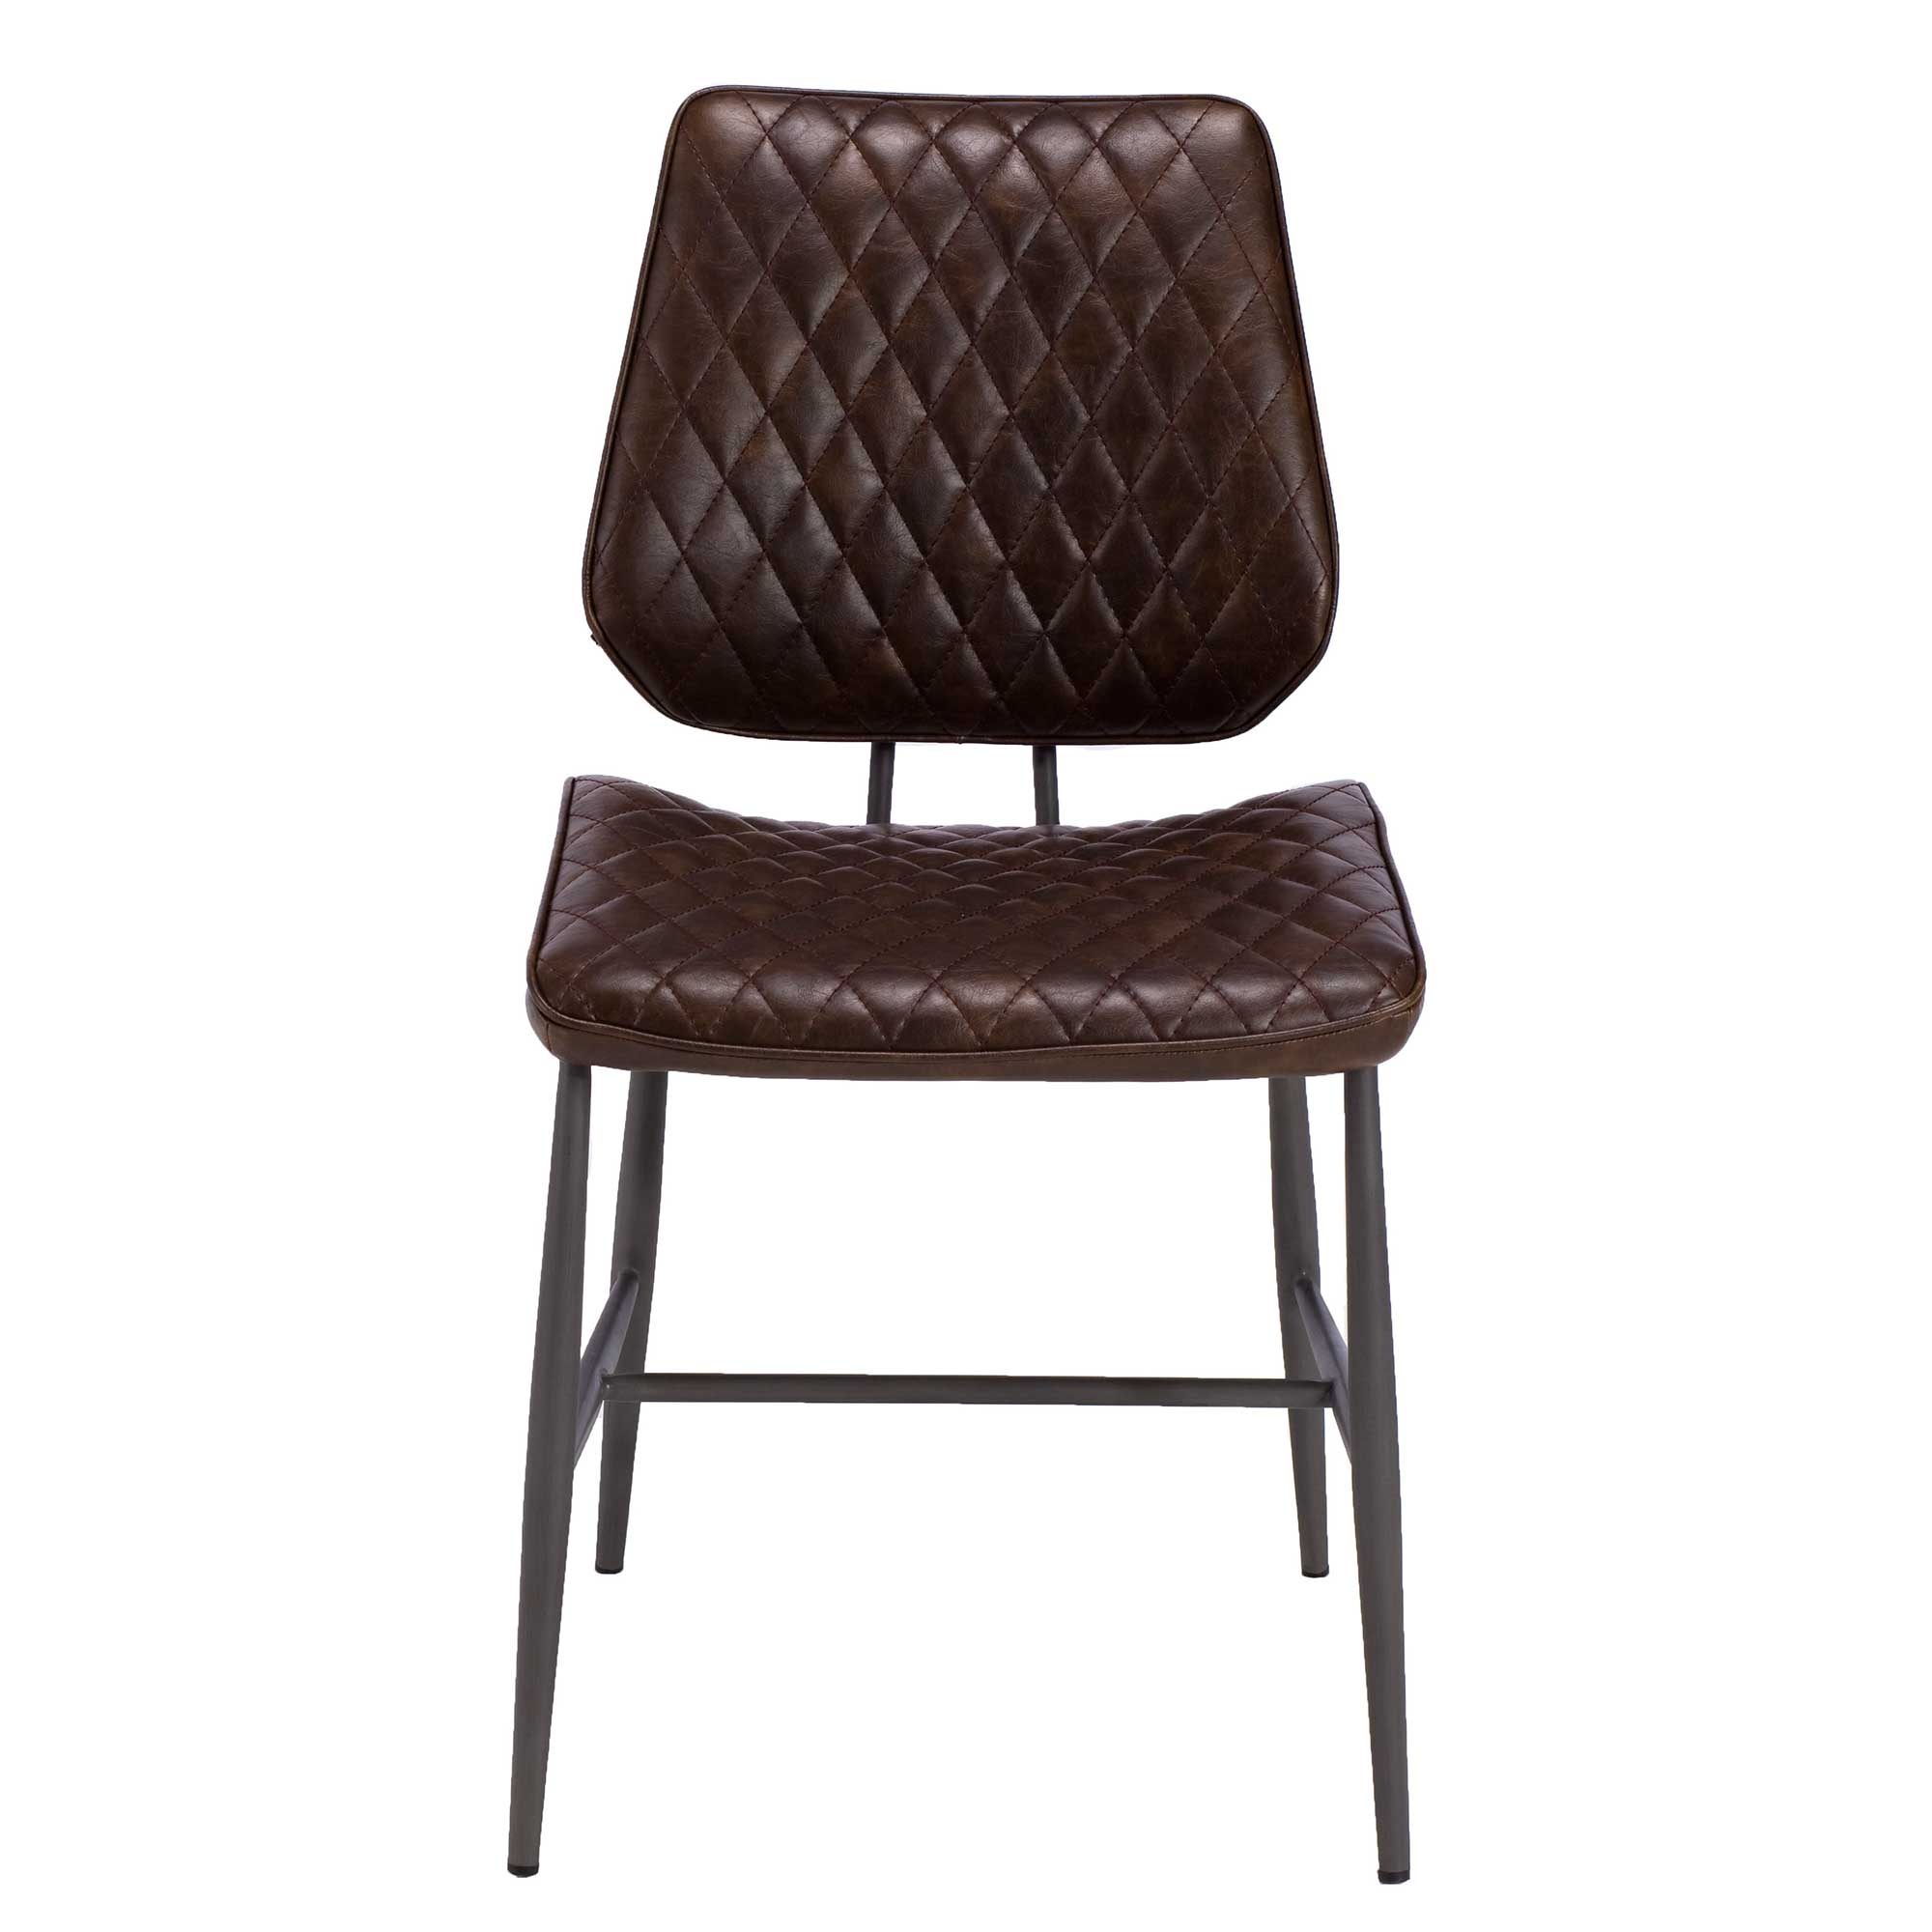 Popular Photo of Quilted Brown Dining Chairs